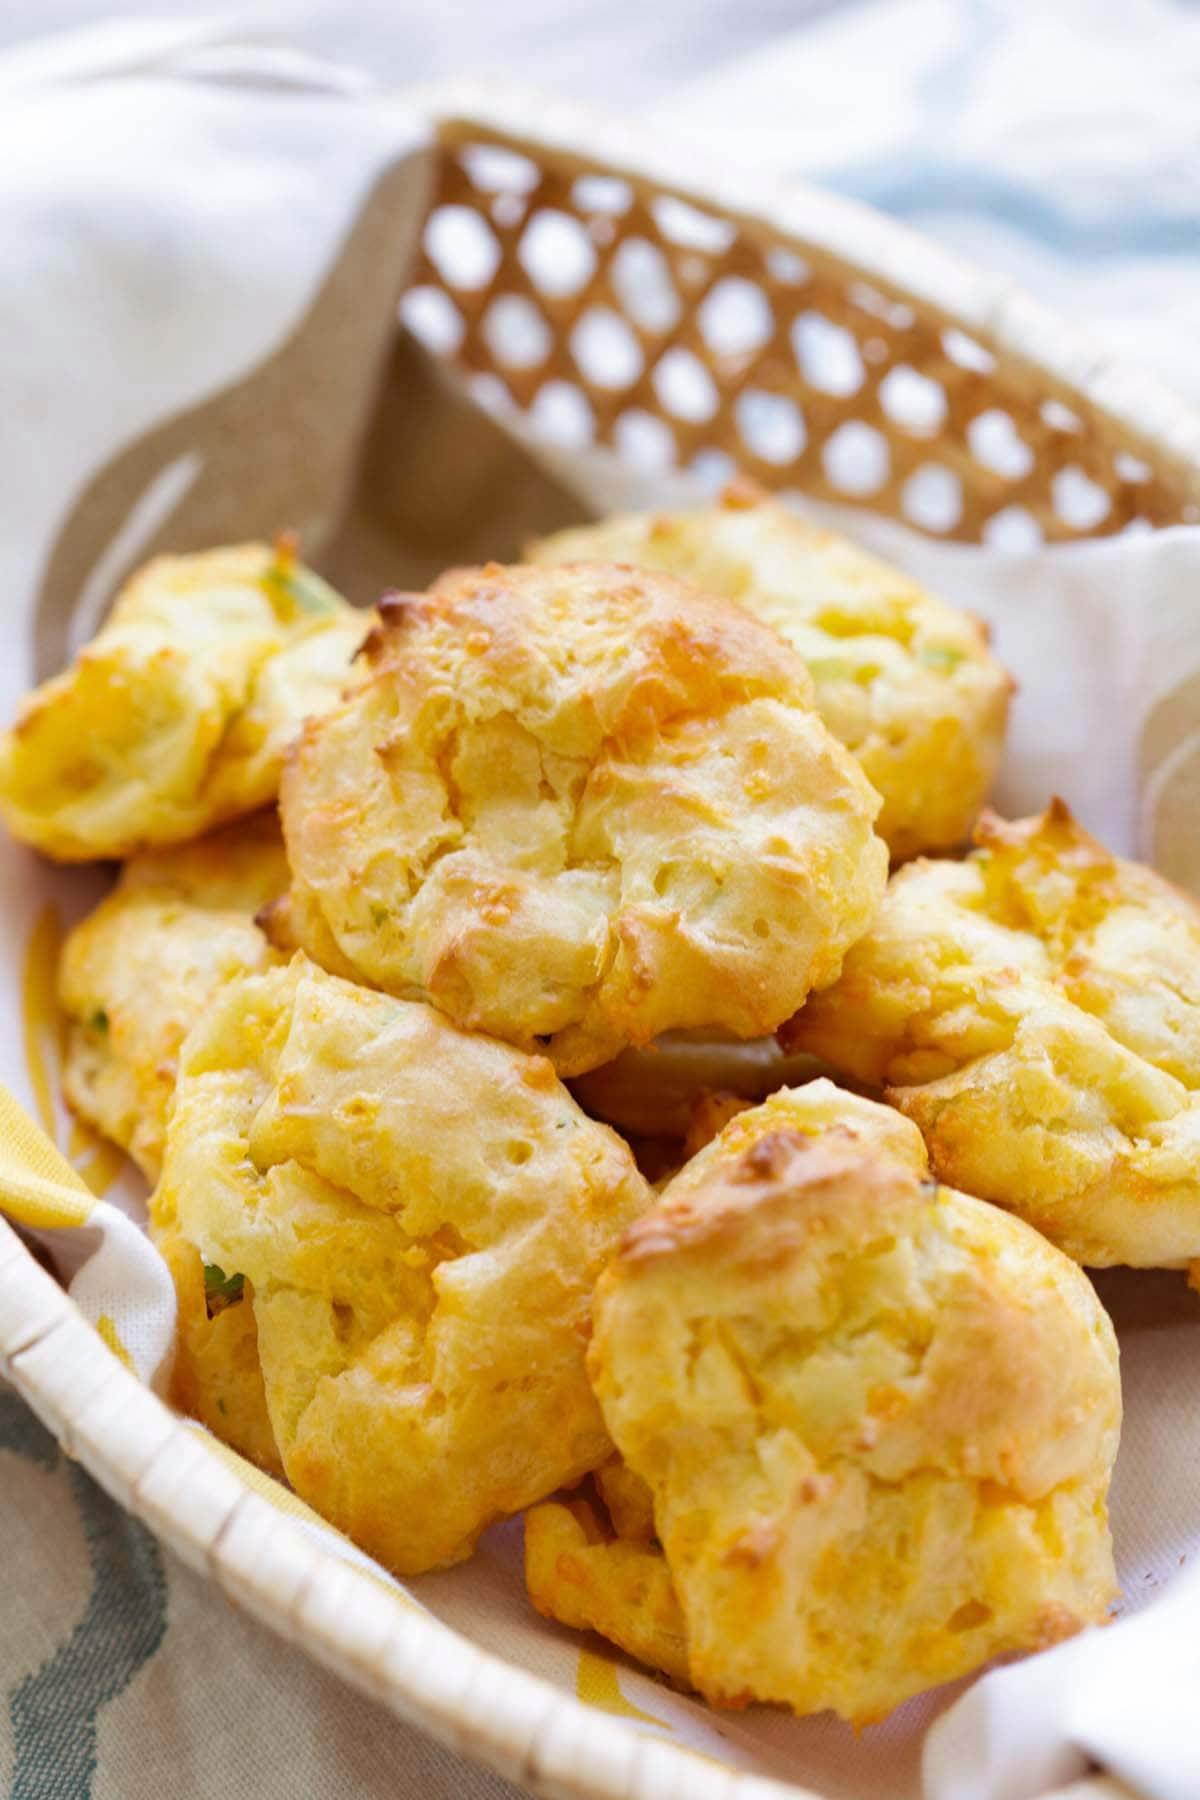 Easy homemade French Cheddar Cheese Puffs served in a basket.